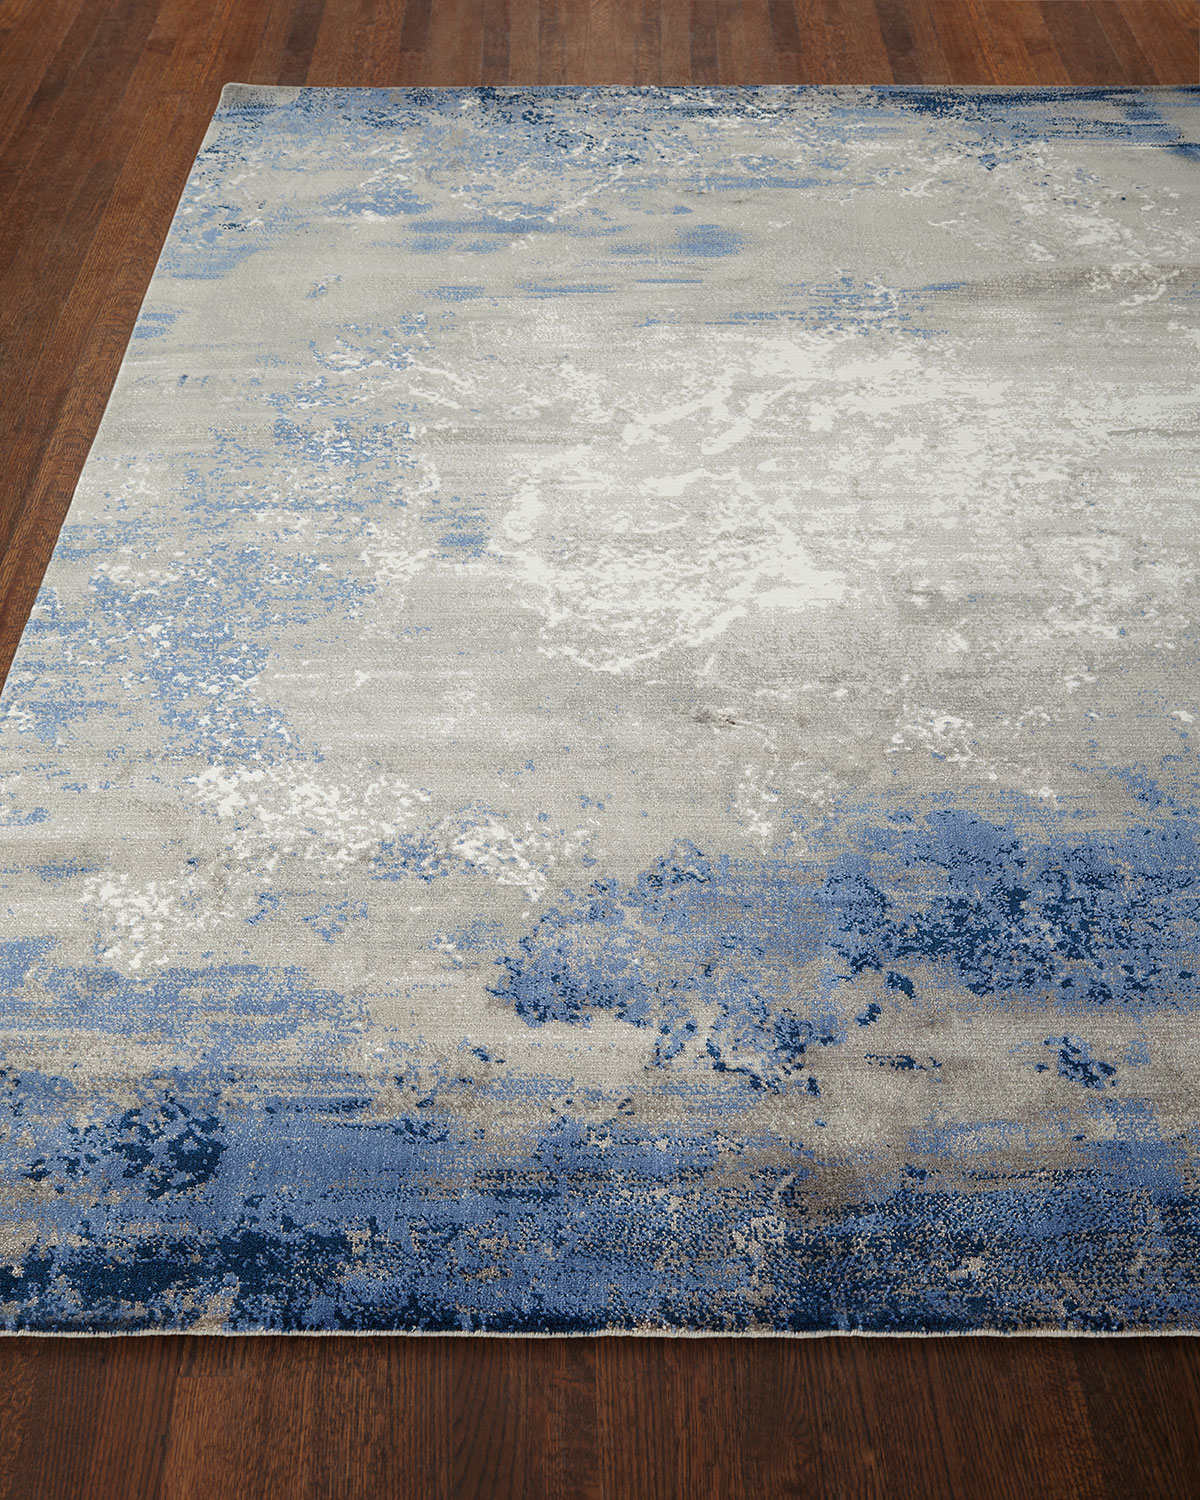 NourCouture Foggy Night Rug, 12' x 15'